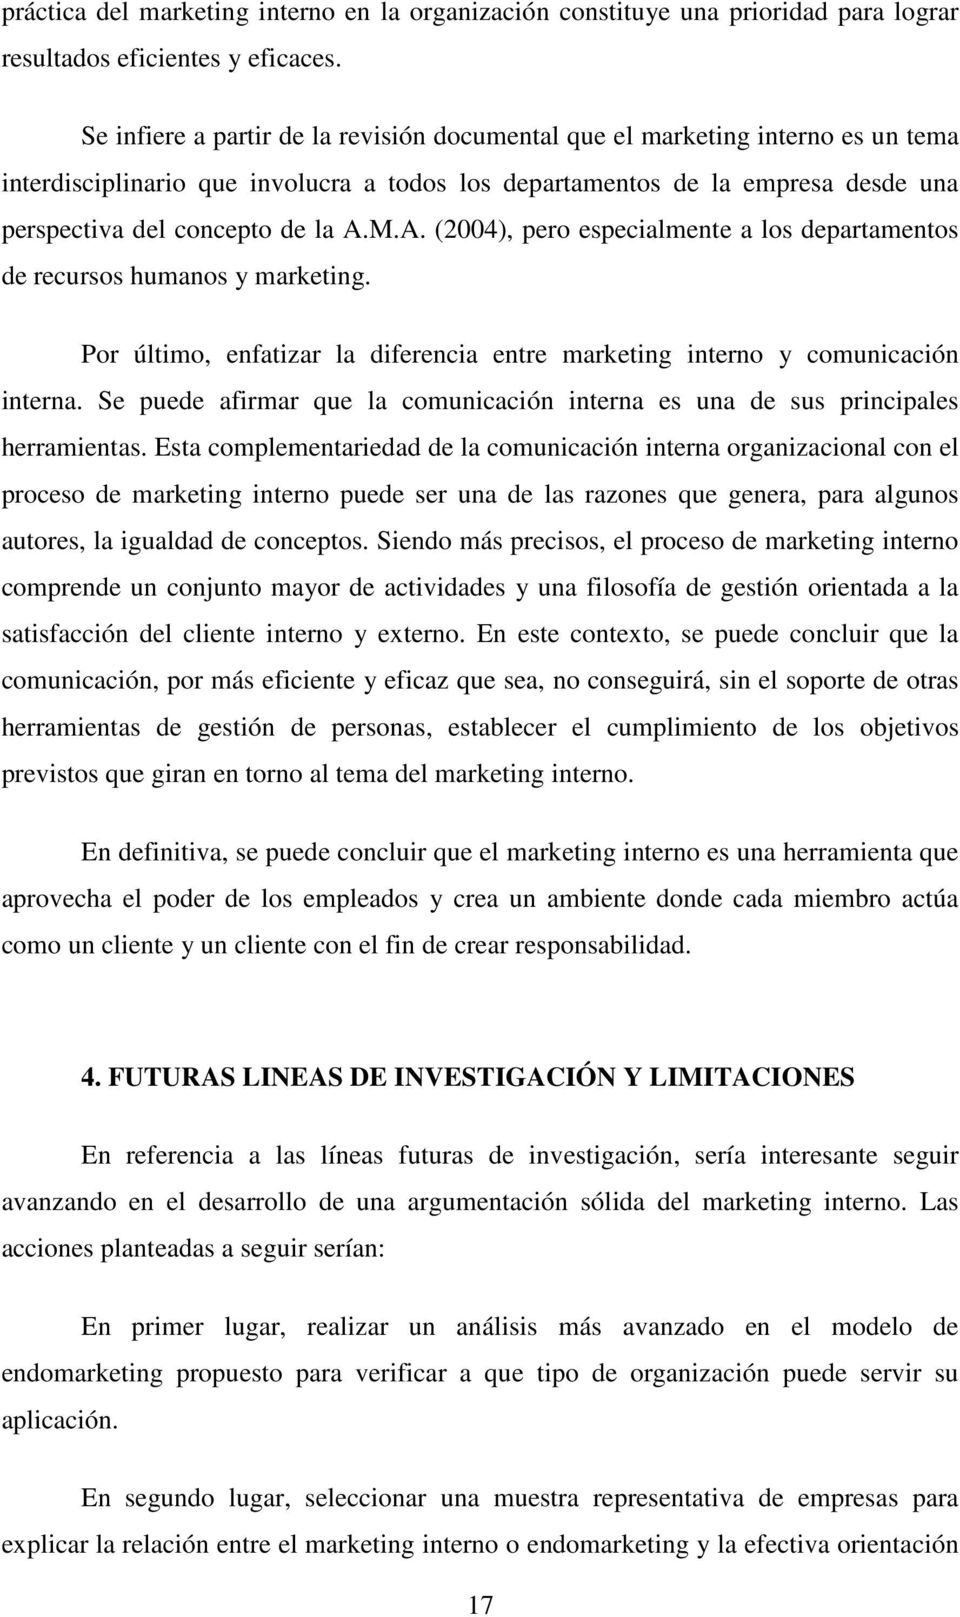 A. (2004), pero especialmente a los departamentos de recursos humanos y marketing. Por último, enfatizar la diferencia entre marketing interno y comunicación interna.